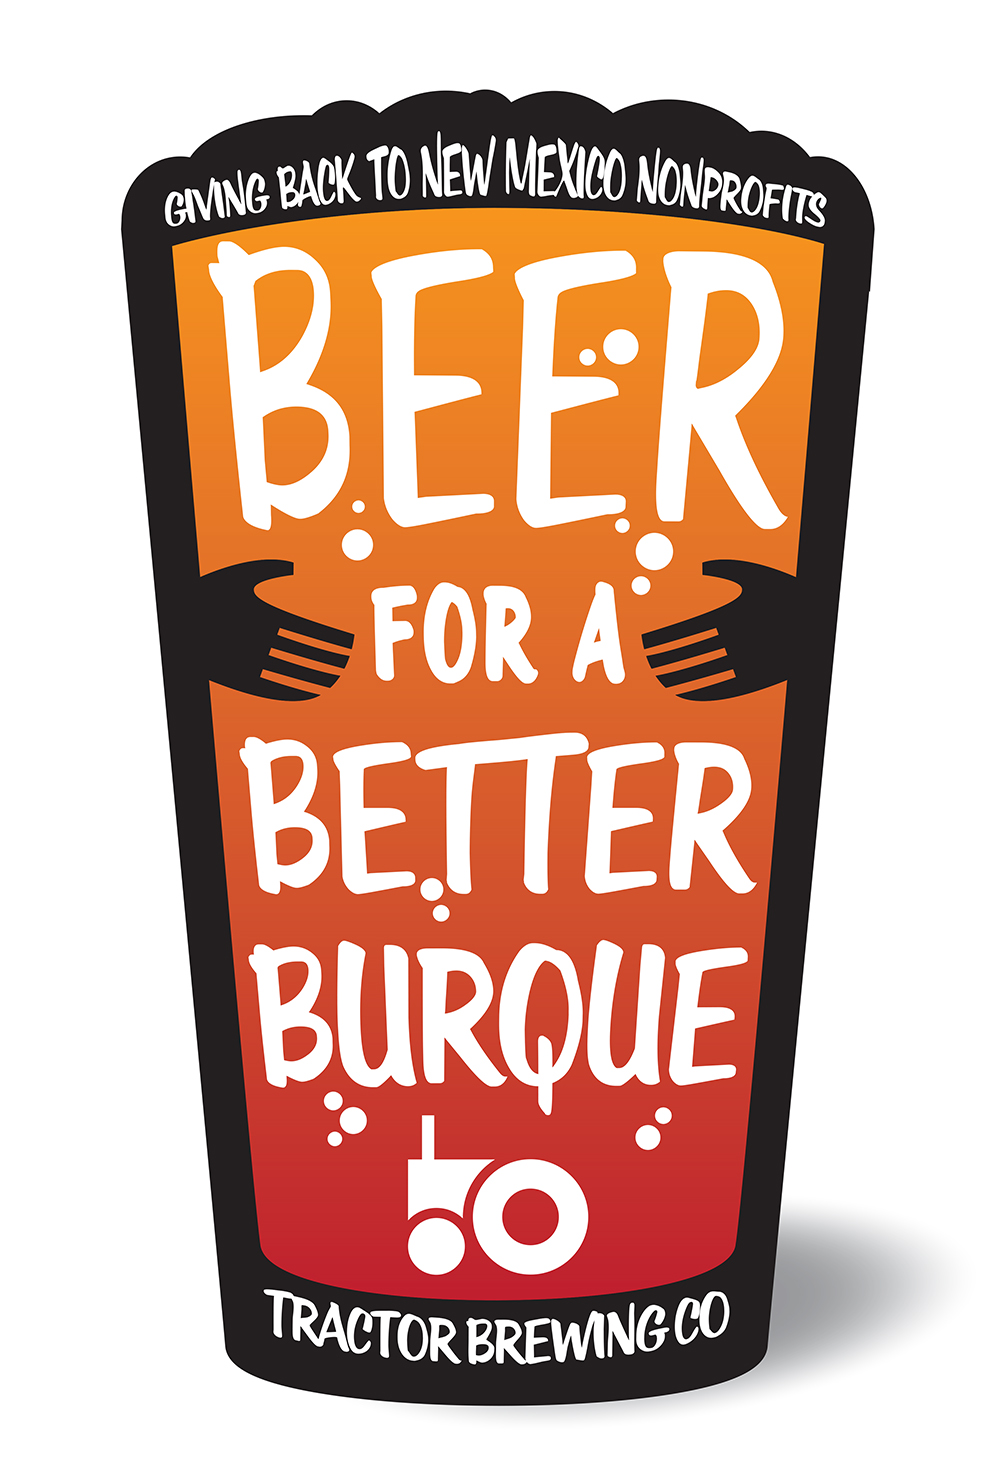 "Beer for a Better Burque Tactor Brewing Co logo ""Giving back to New Mexico Non-Profits"""